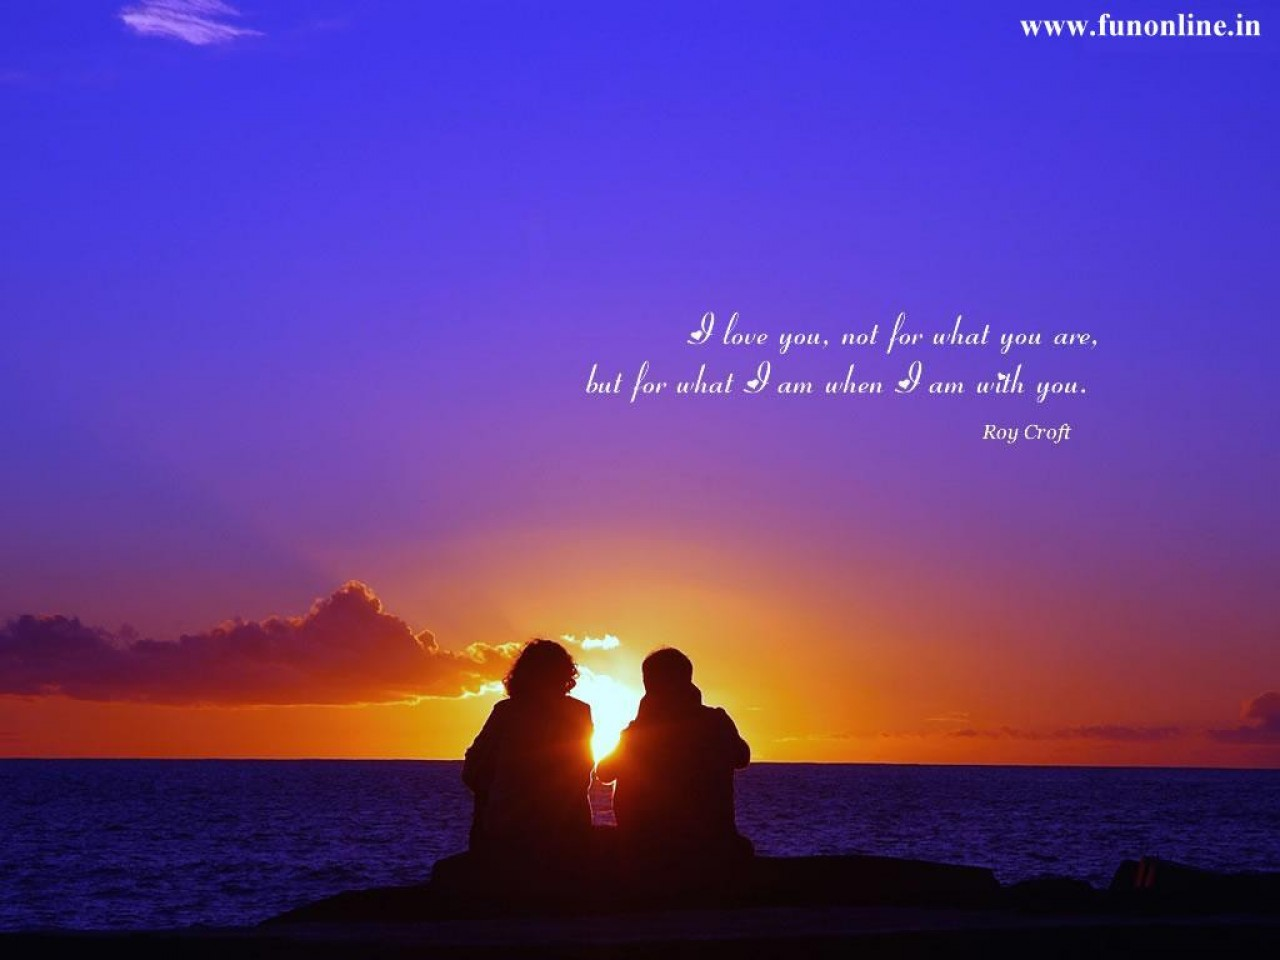 Love Wallpaper With Romantic Quotes : sad quotes wallpapers love quotes wallp[apers sad love quotes wallpapers tumblr quotes ...